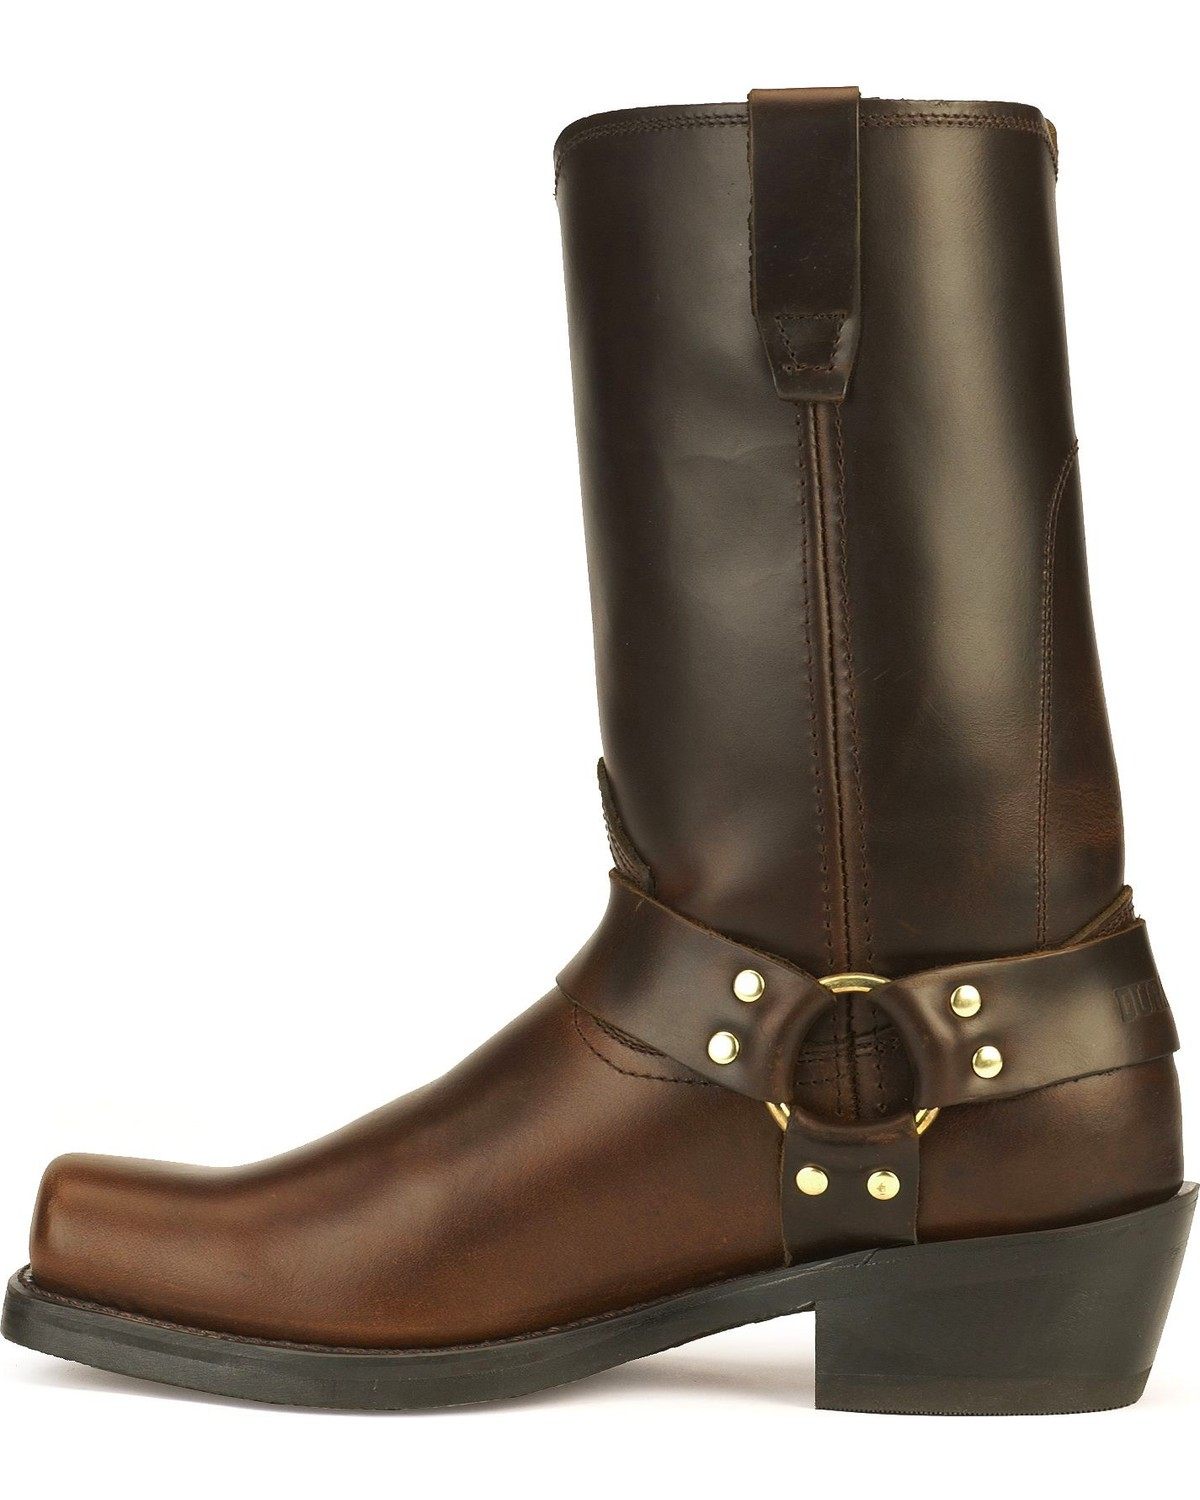 Durango Harness Cowboy Boots - Square Toe | Sheplers